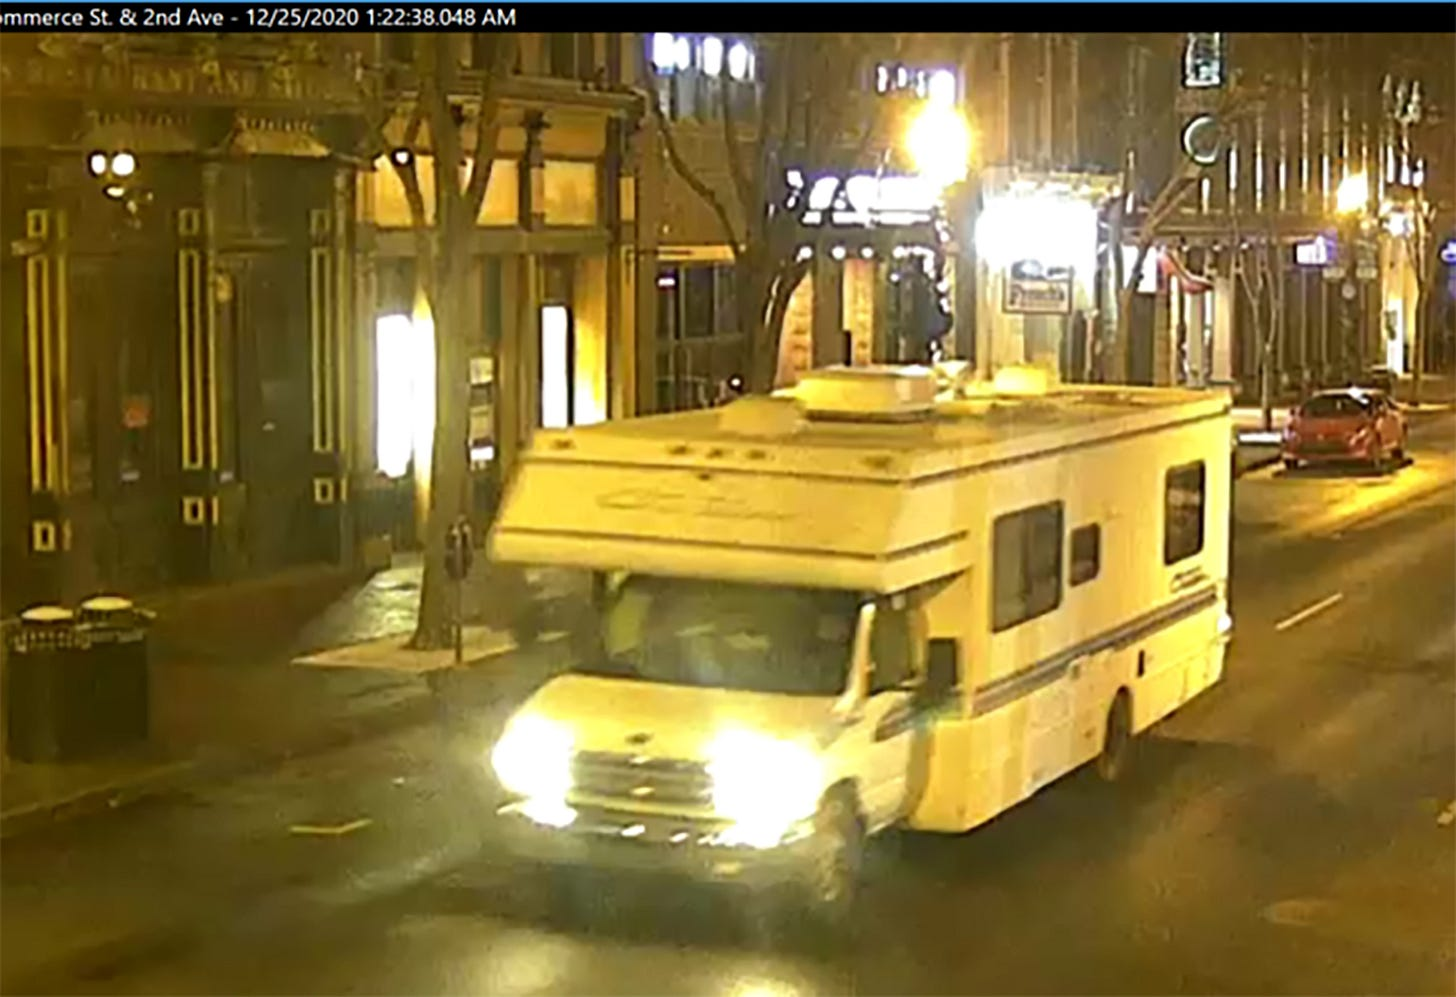 NASHVILLE, TENNESSEE - DECEMBER 25: In this handout image provided by the Metro Nashville Police Department, a screengrab of surveillance footage shows the recreational vehicle suspected of being used in the Christmas day bombing on December 25, 2020 in Nashville, Tennessee. A Hazardous Devices Unit was en route to check on a recreational vehicle which then exploded, extensively damaging some nearby buildings. According to reports, the police believe the explosion to be intentional, with at least 3 injured and human remains found in the vicinity of the explosion. (Photo by Metro Nashville Police Department via Getty Images)